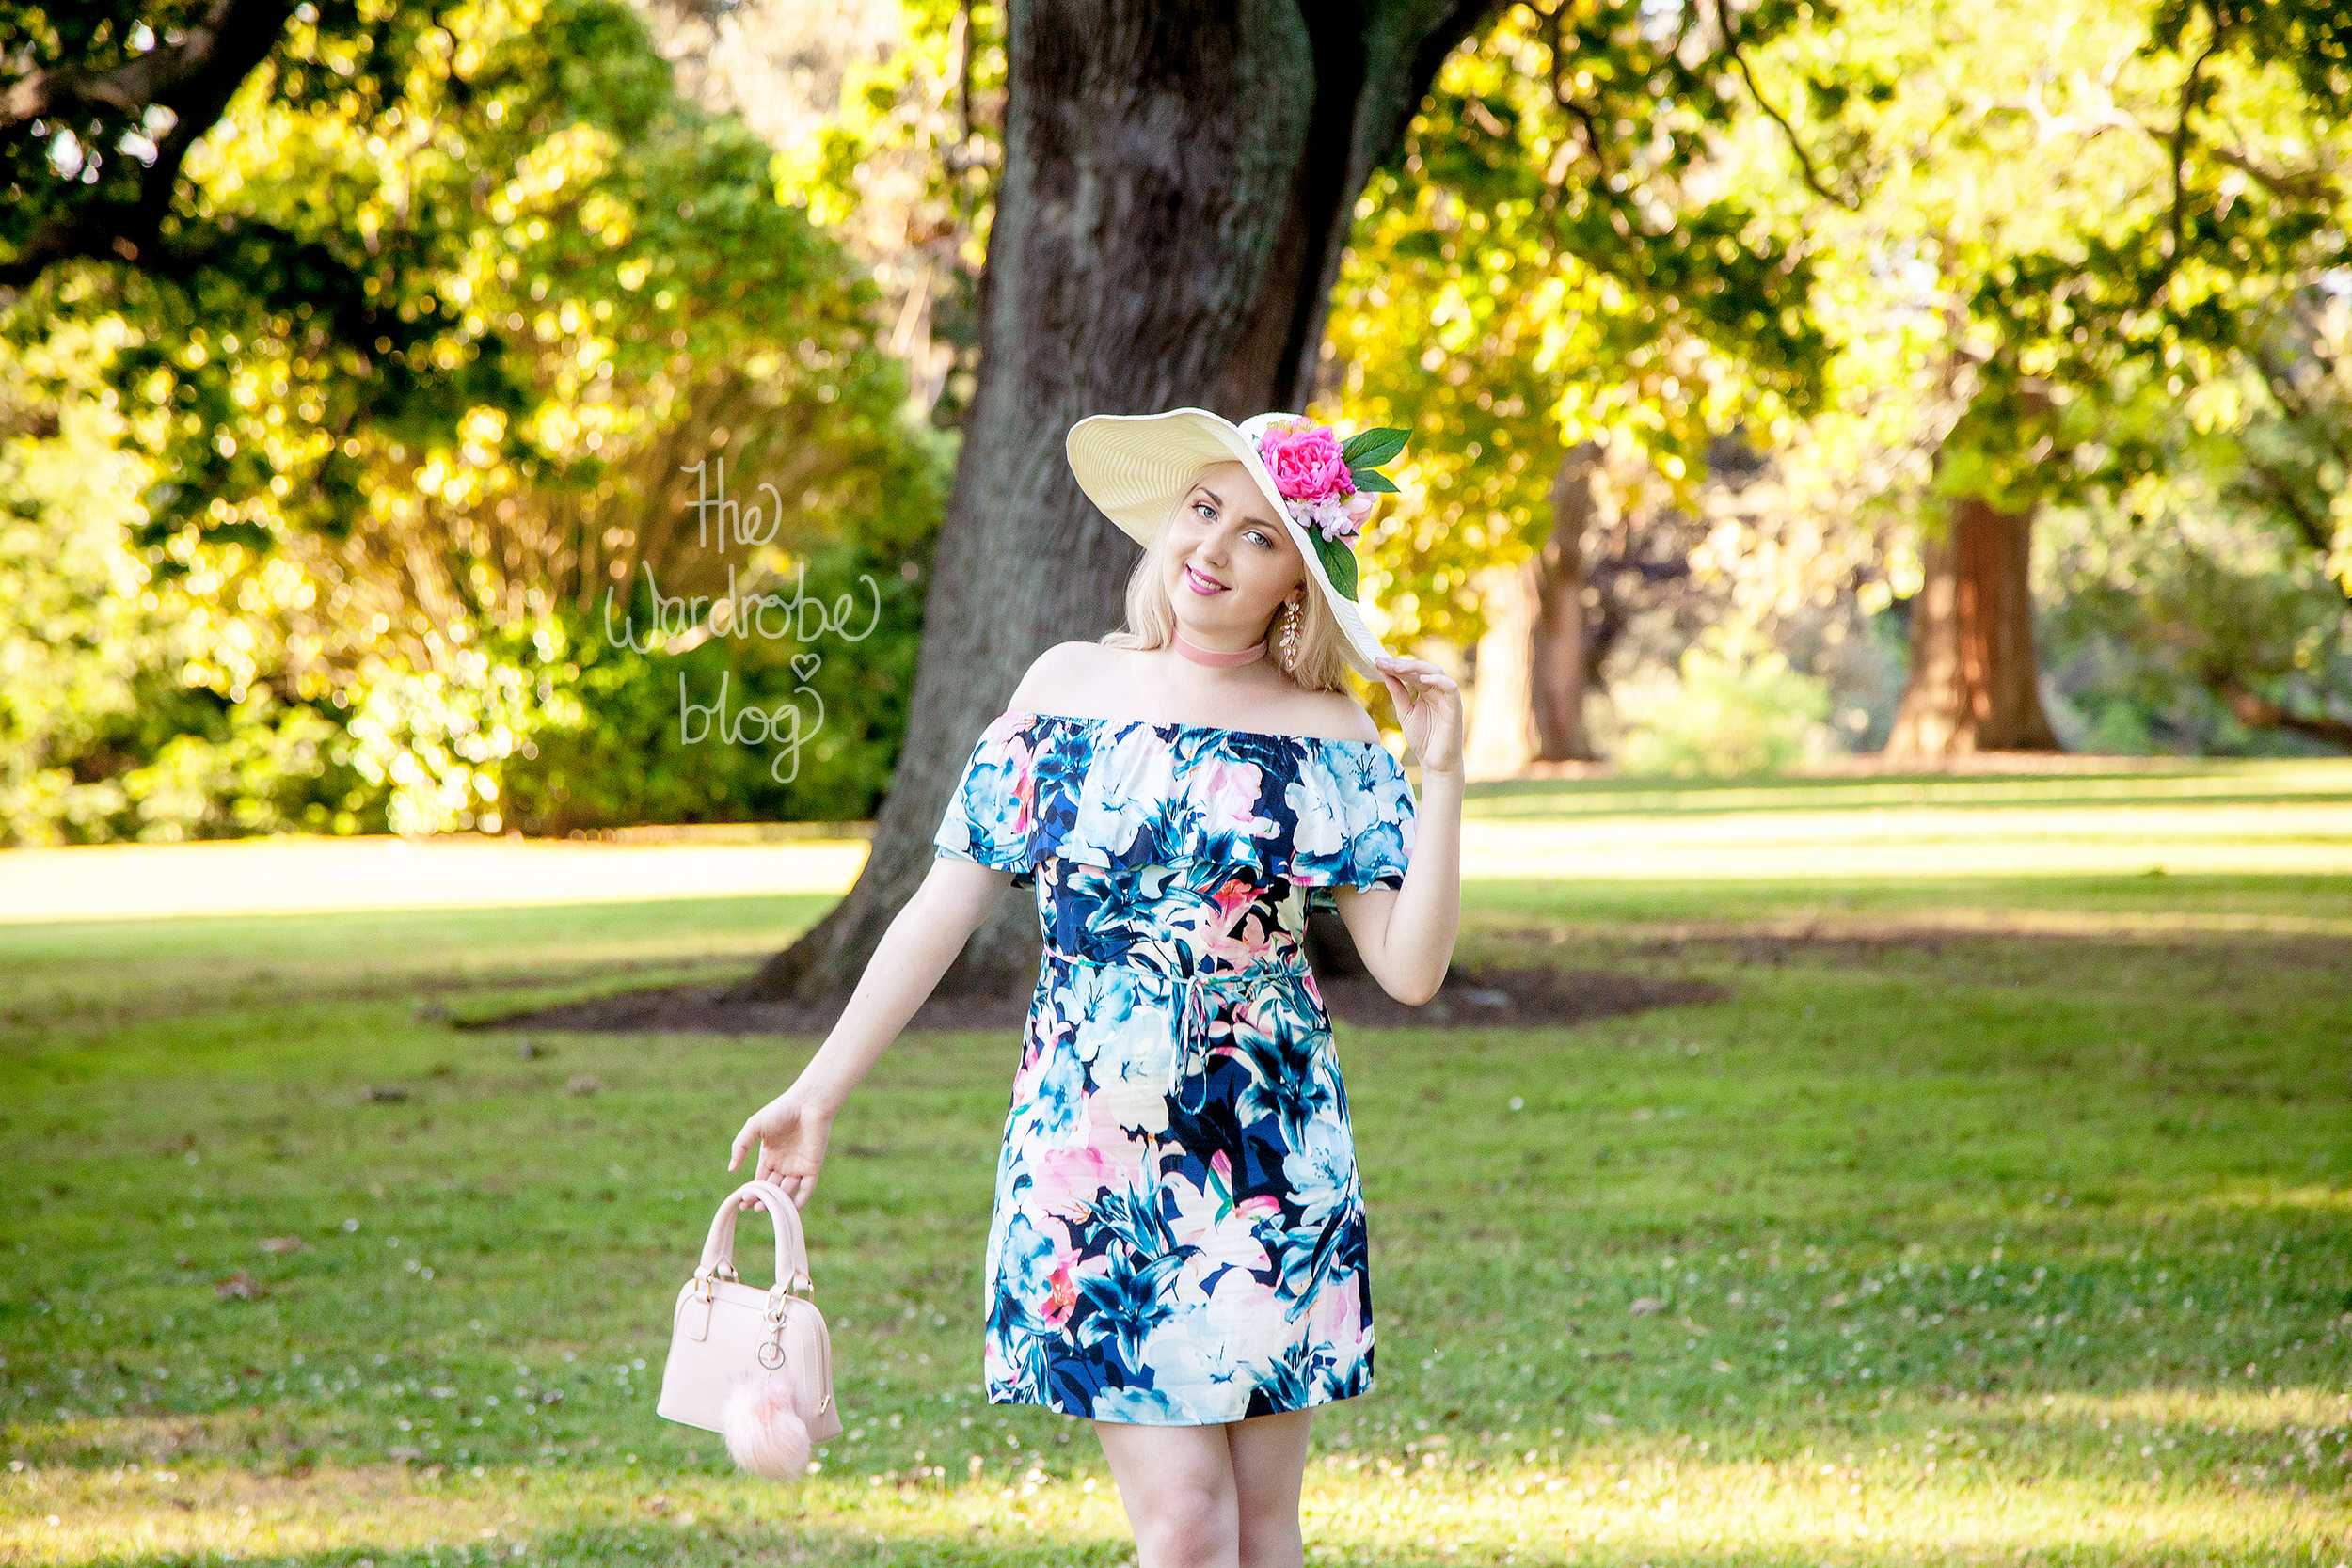 Dress from Portmans, Bag + accessories from Colette by Colette Hayman, Hat from Kmart + Hairflower from  Shop the Wardrobe on Etsy.